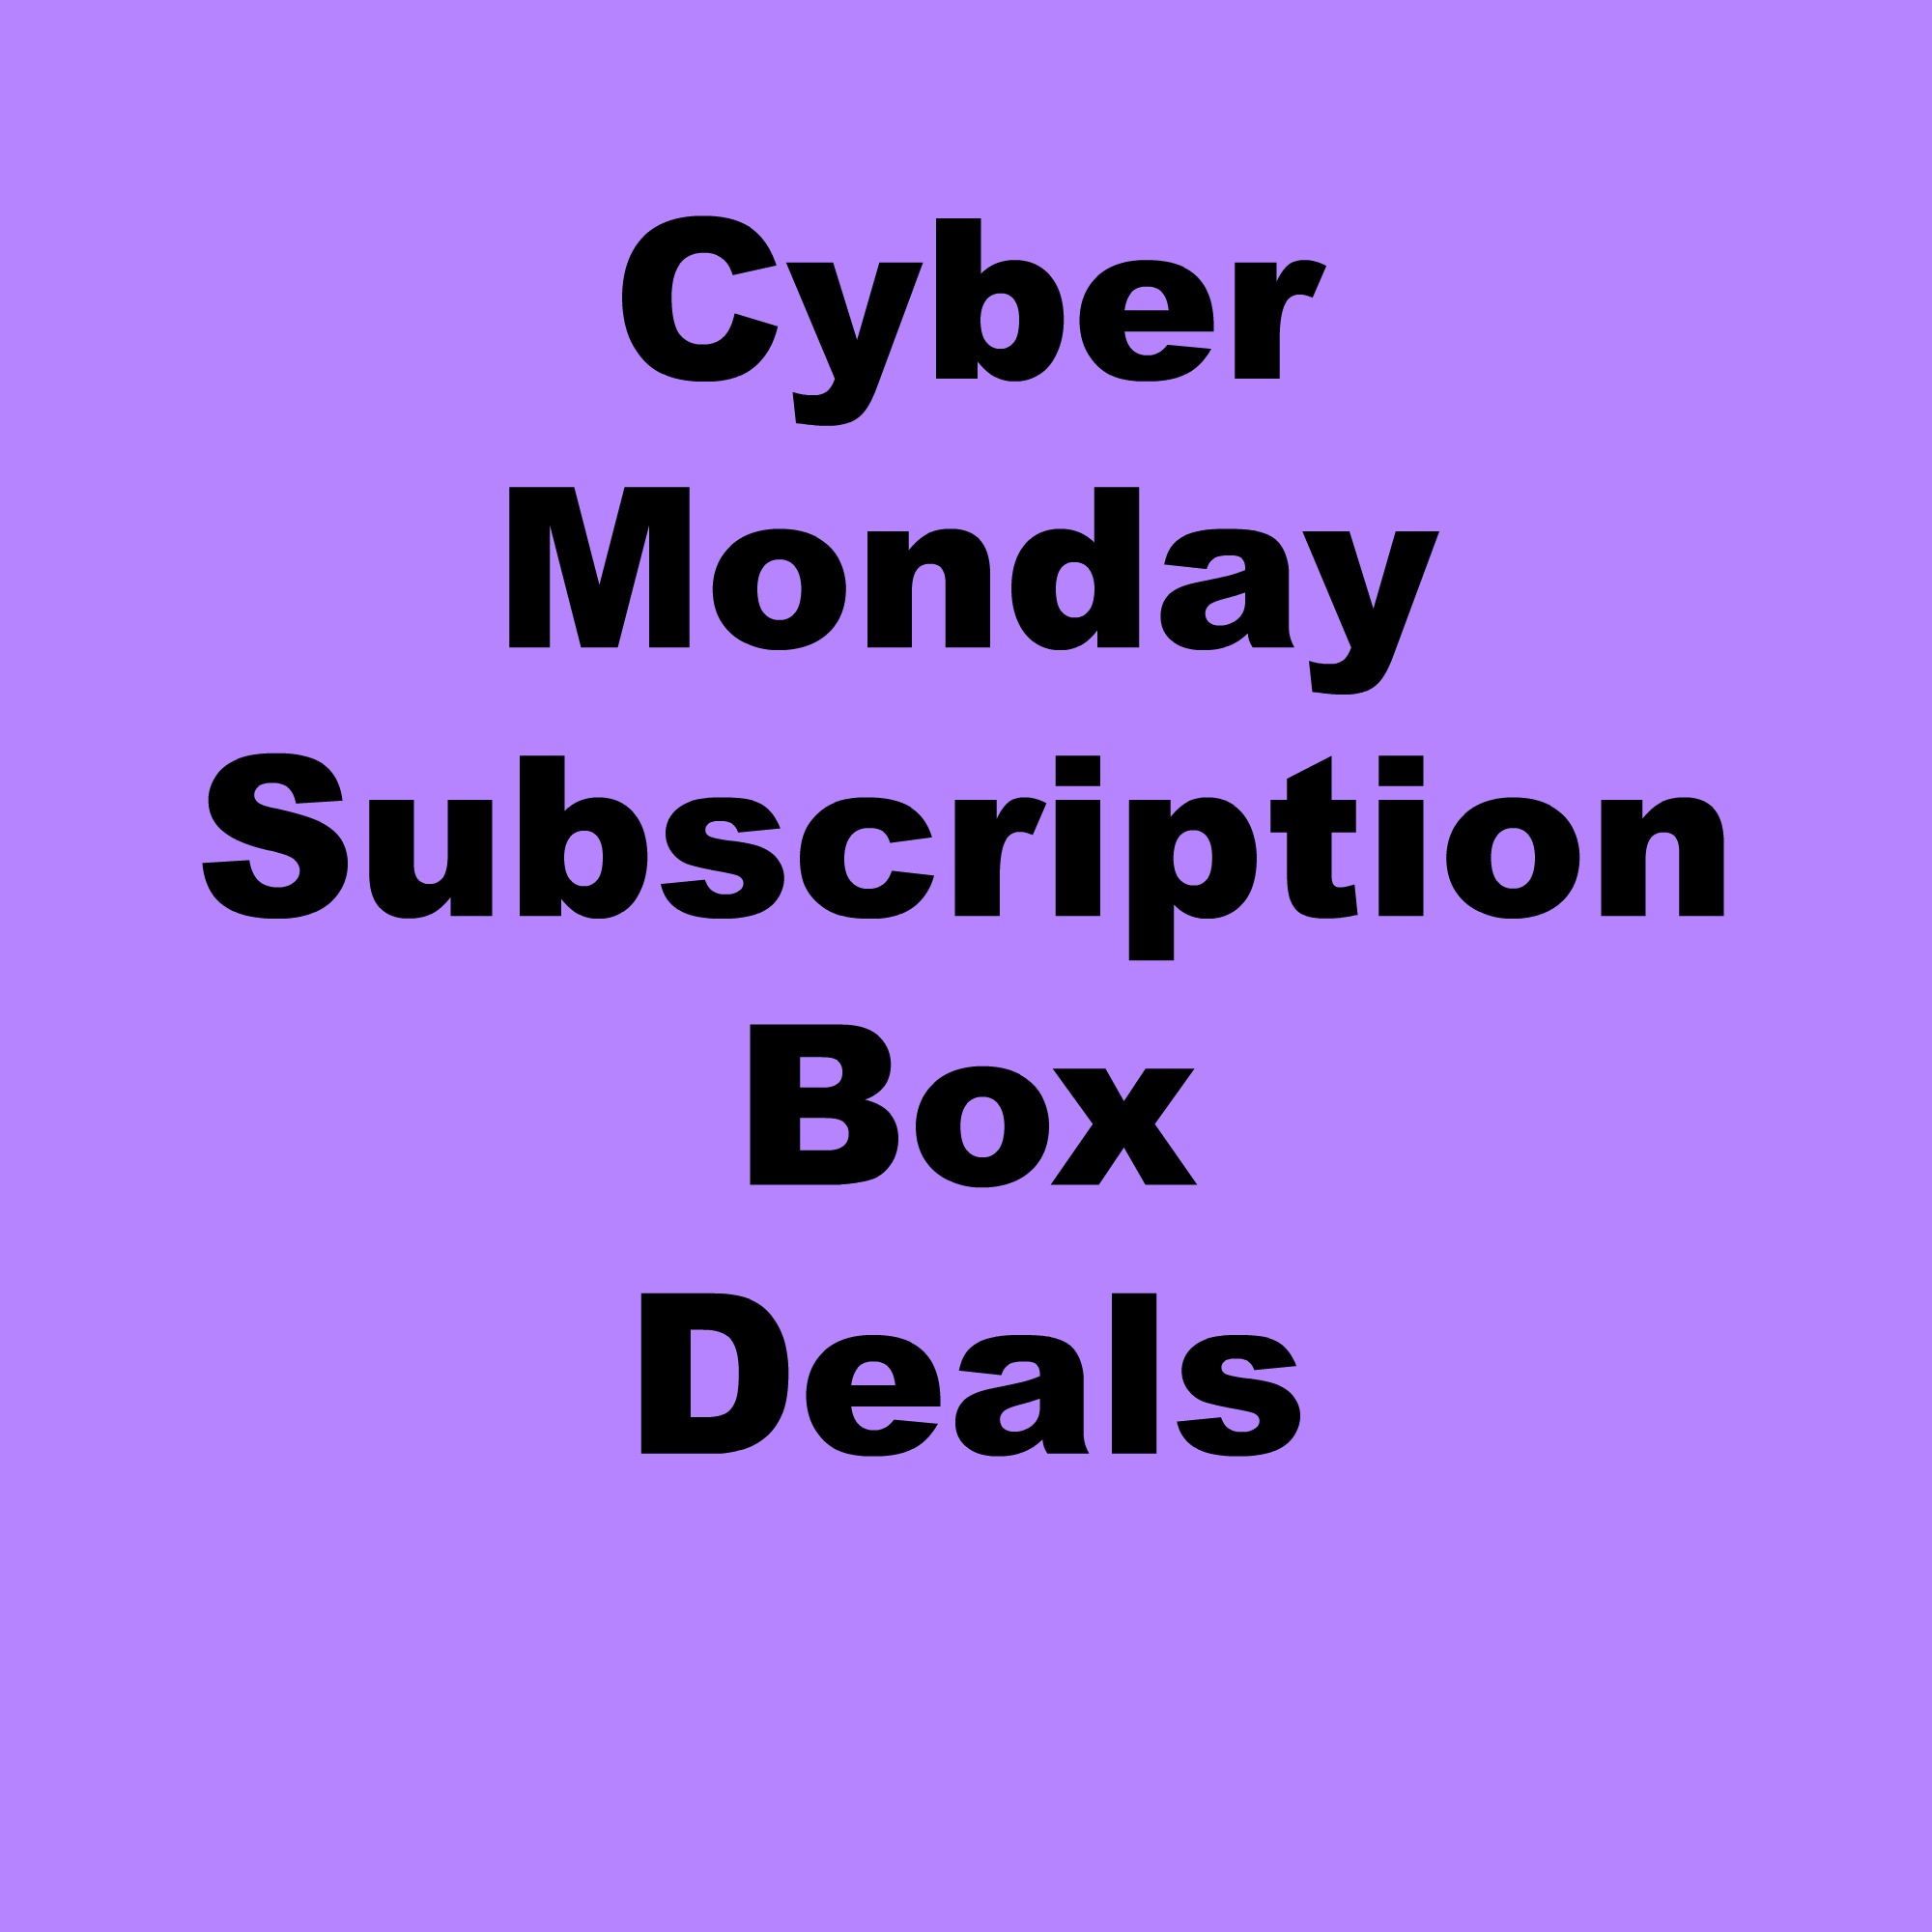 cyber monday subscription box coupons deals 2014 subscription box mom. Black Bedroom Furniture Sets. Home Design Ideas